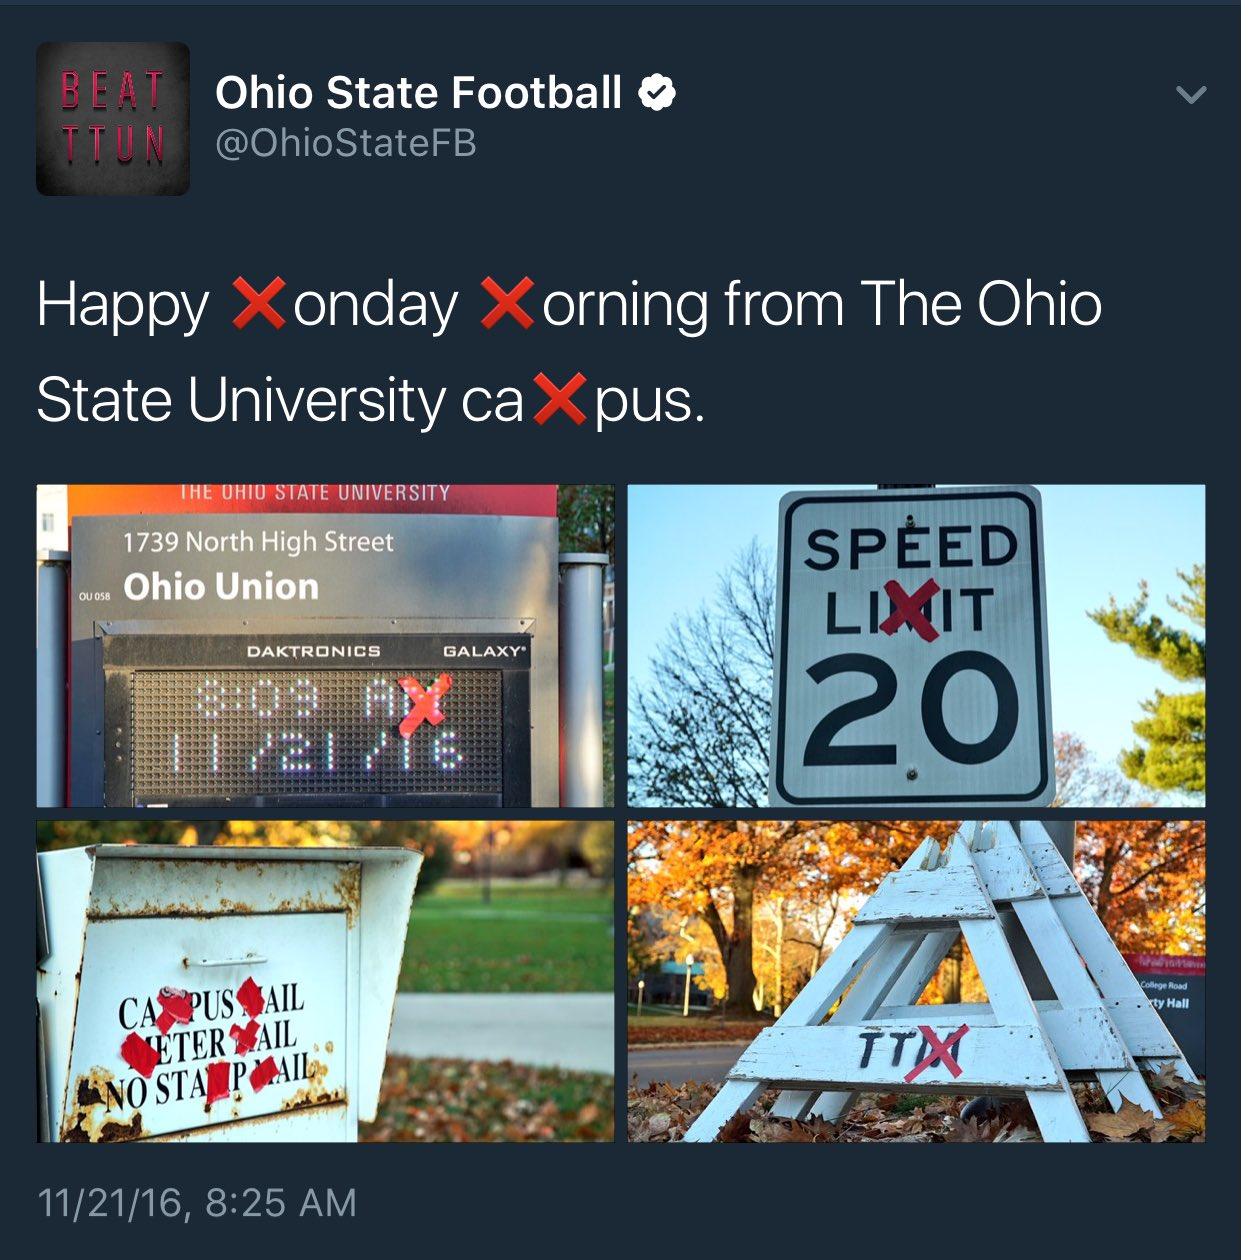 You tried. @OhioStateFB https://t.co/55qUUjHbbx